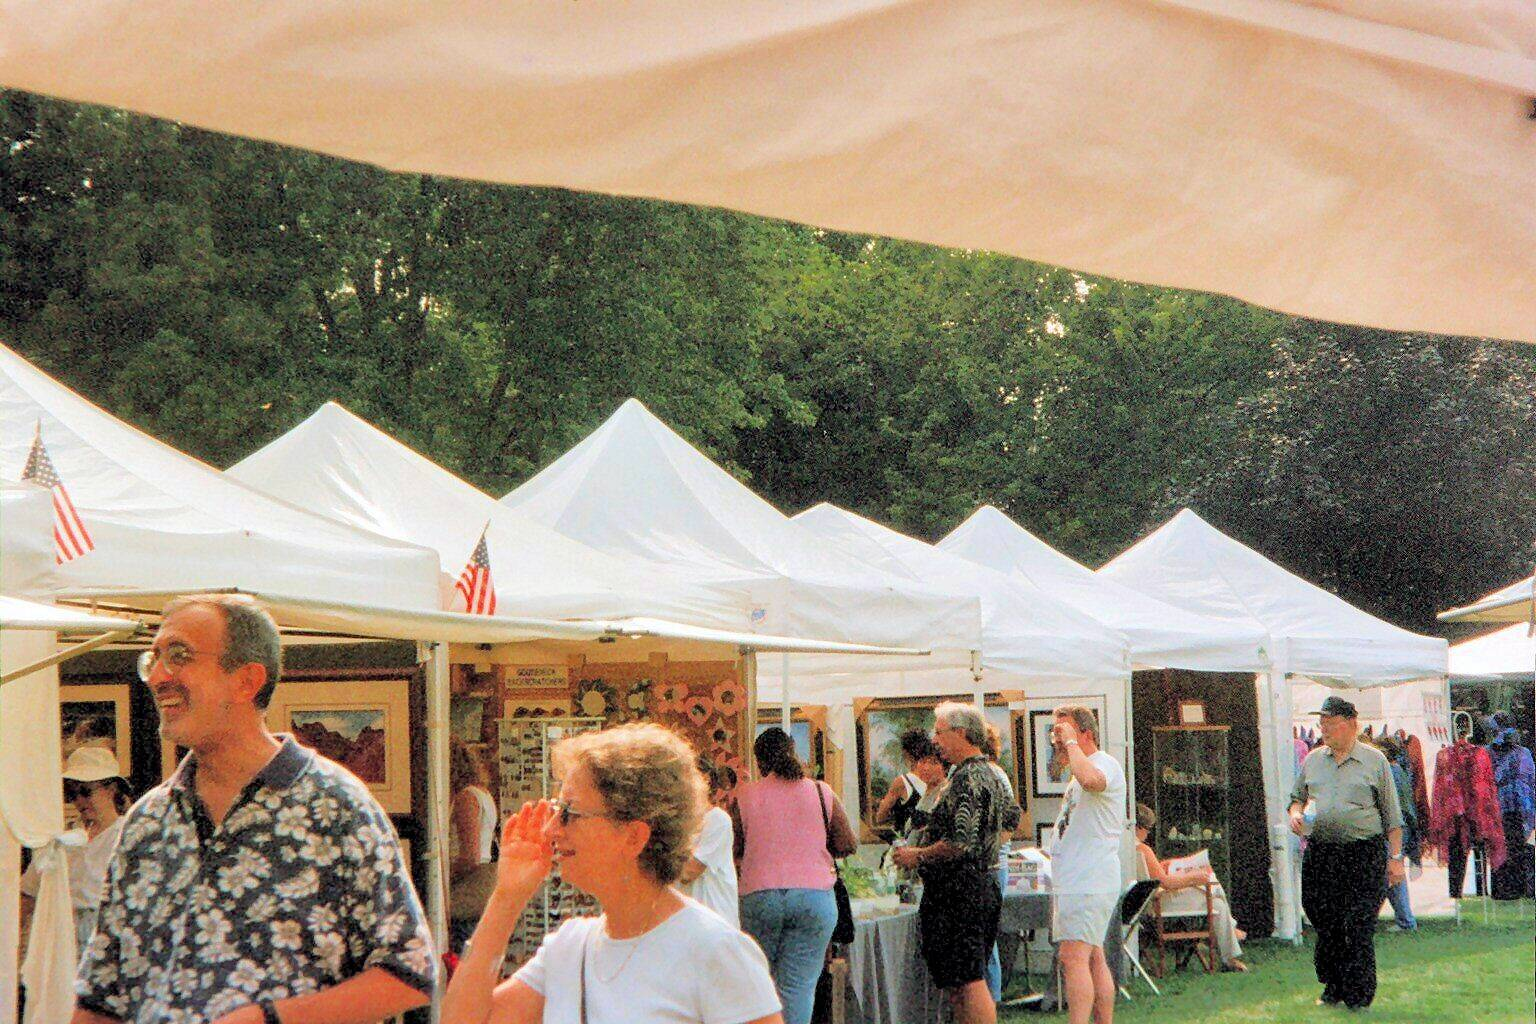 Artists and crafters from far and near will fill Scoville Park in Oak Park Aug. 16 and 17 during the 40th Annual Oak Park Ave-Lake Arts & Crafts Show.